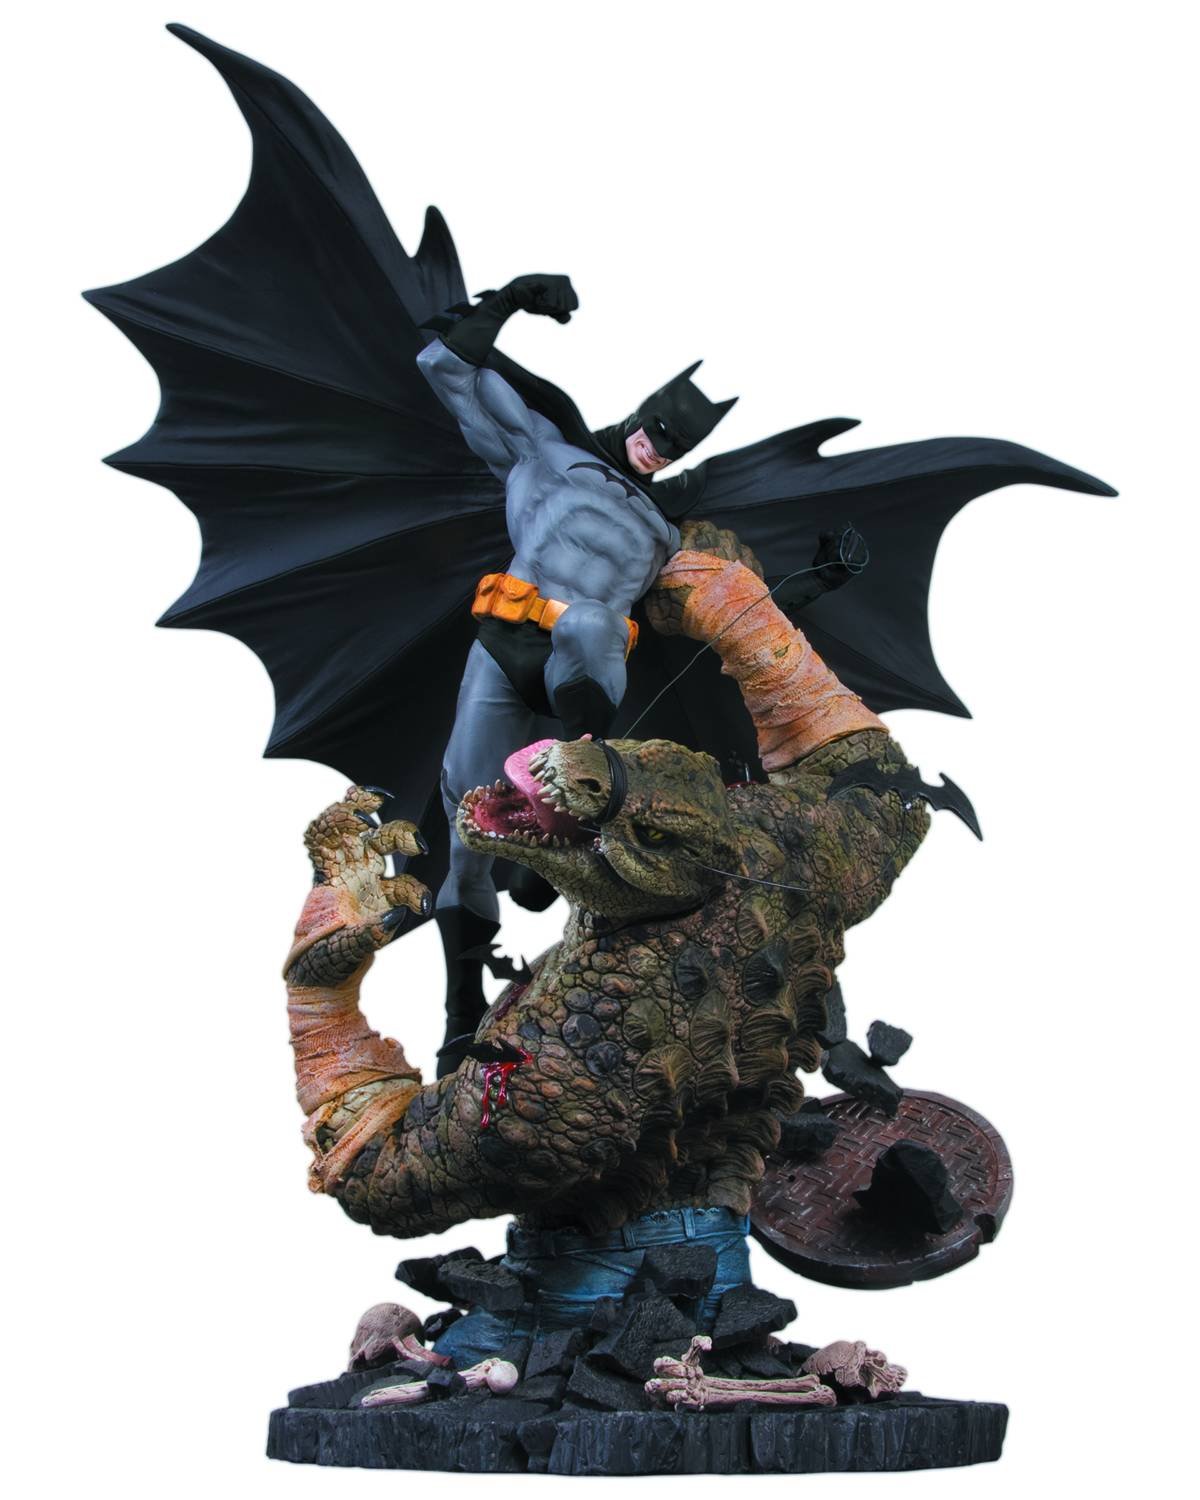 Batman vs Killer Croc Statue